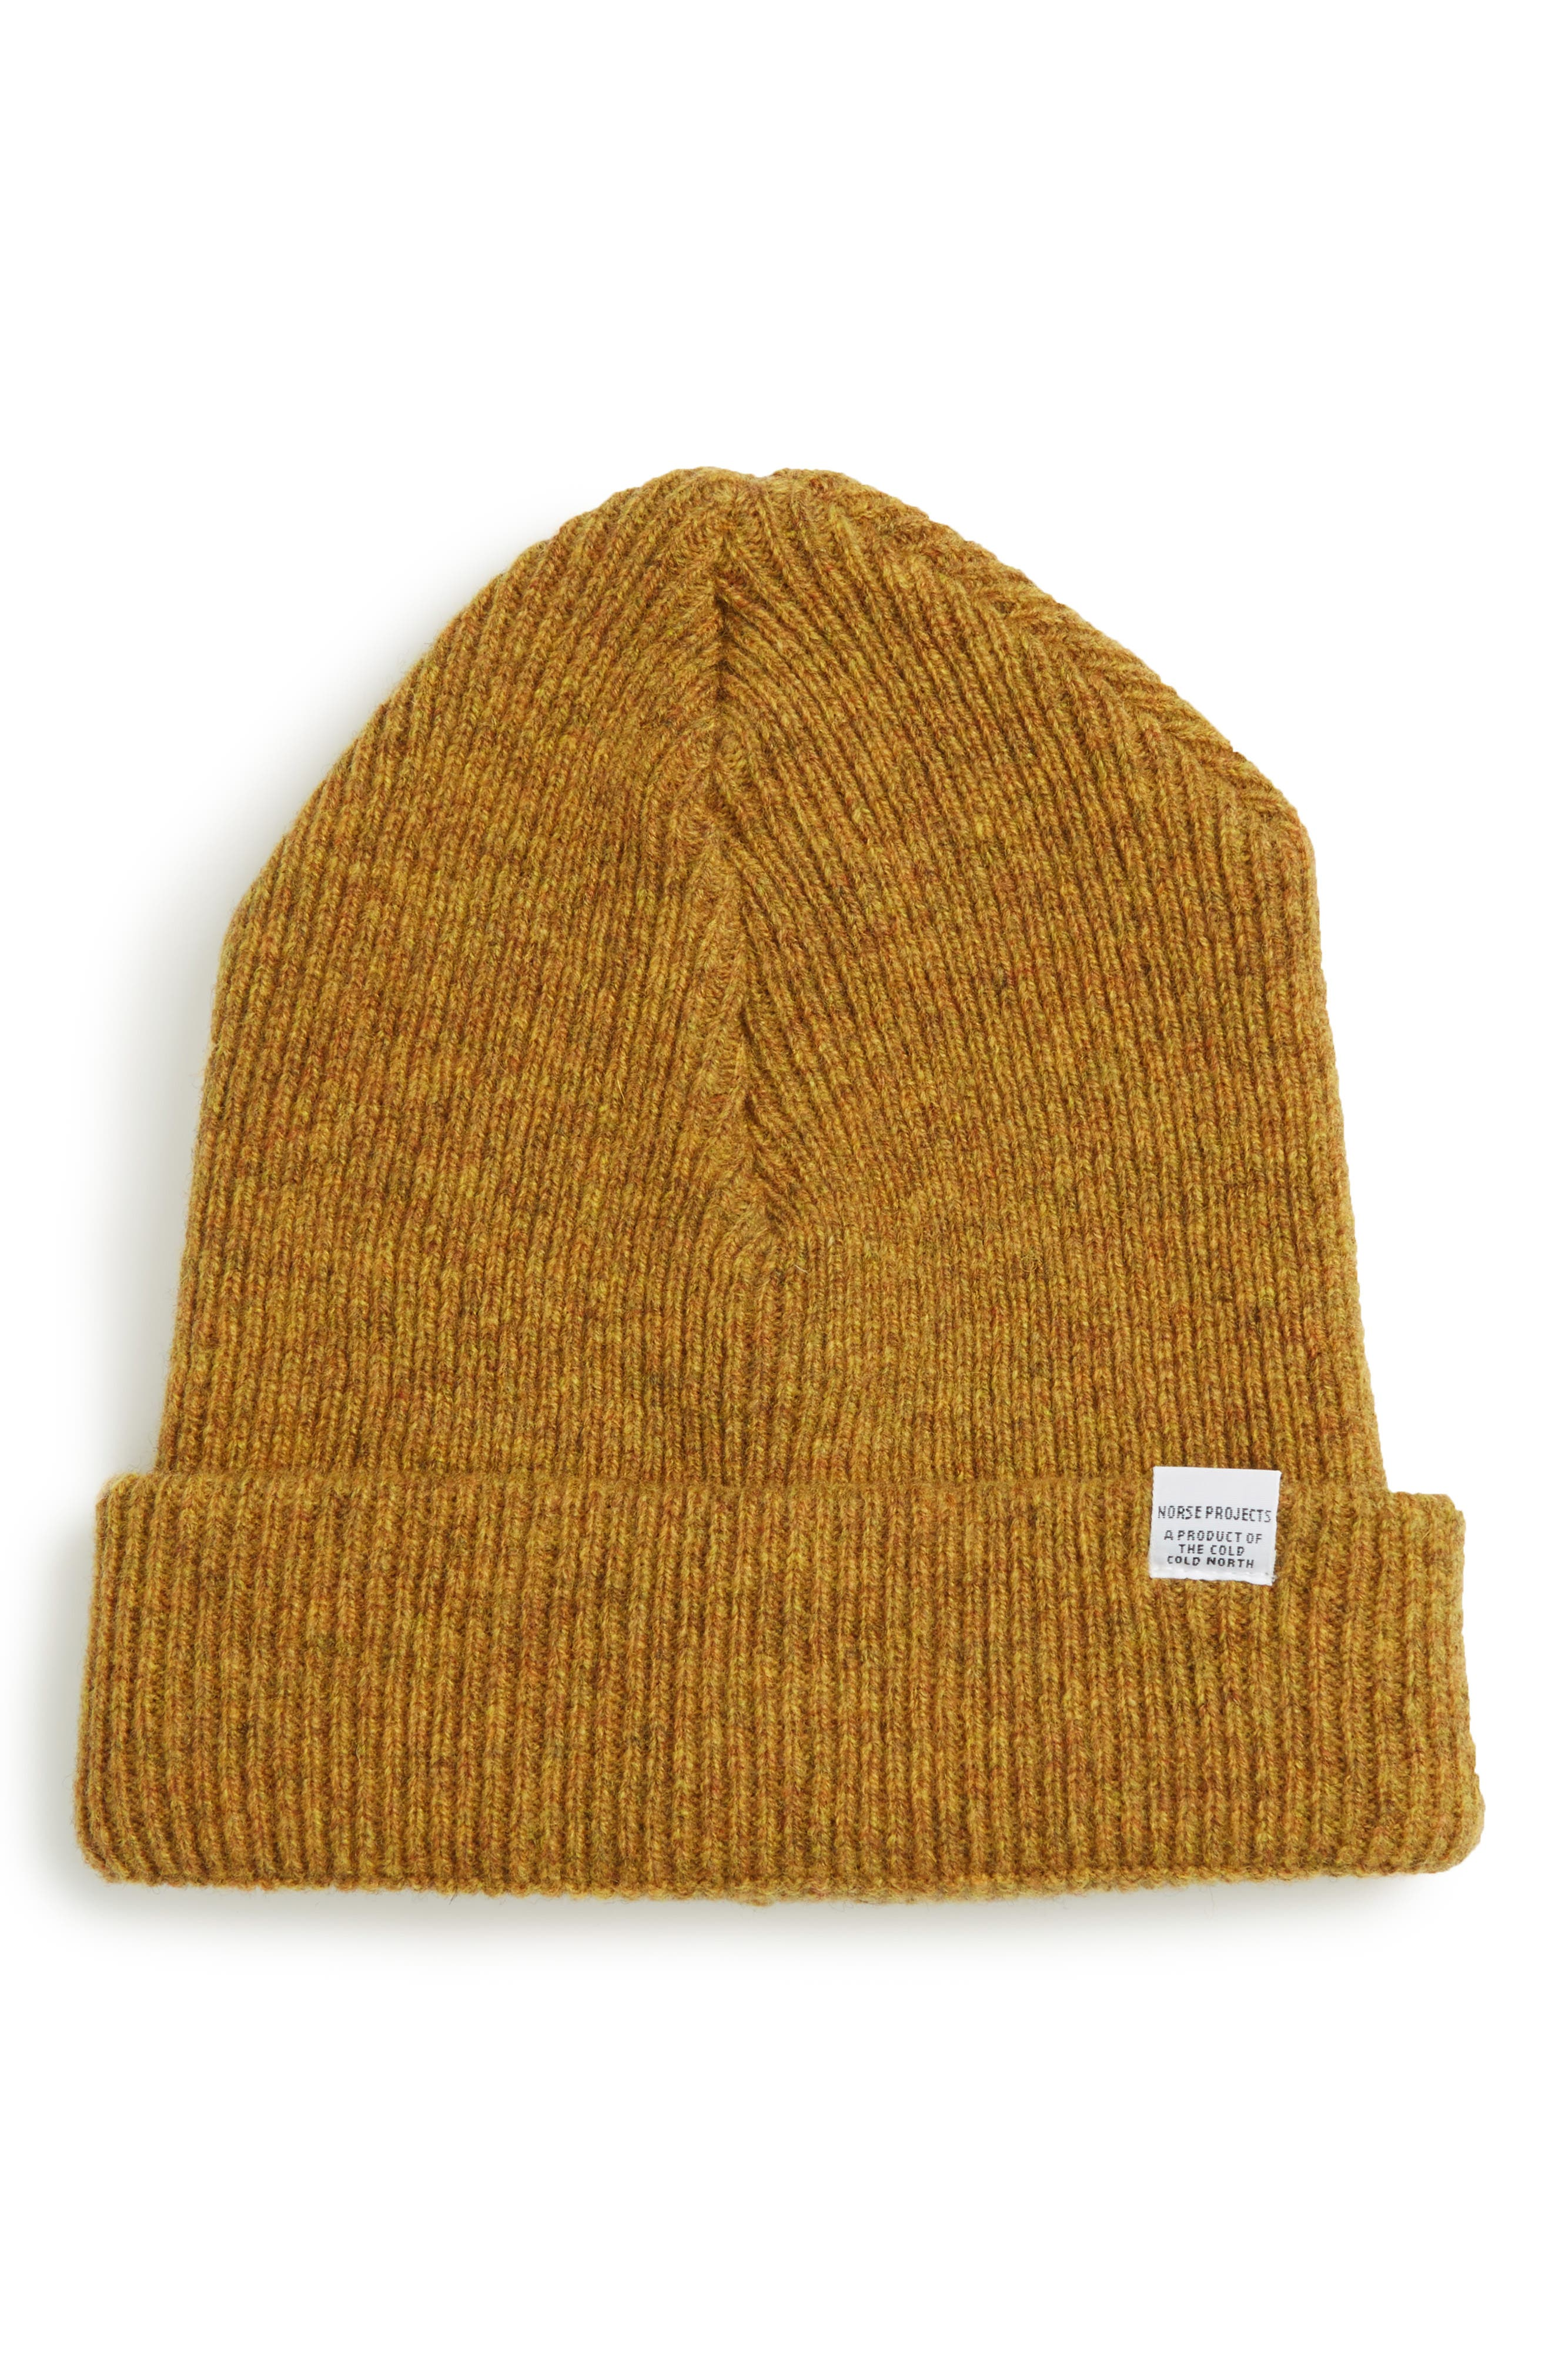 NORSE PROJECTS Norse Project Wool Knit Cap